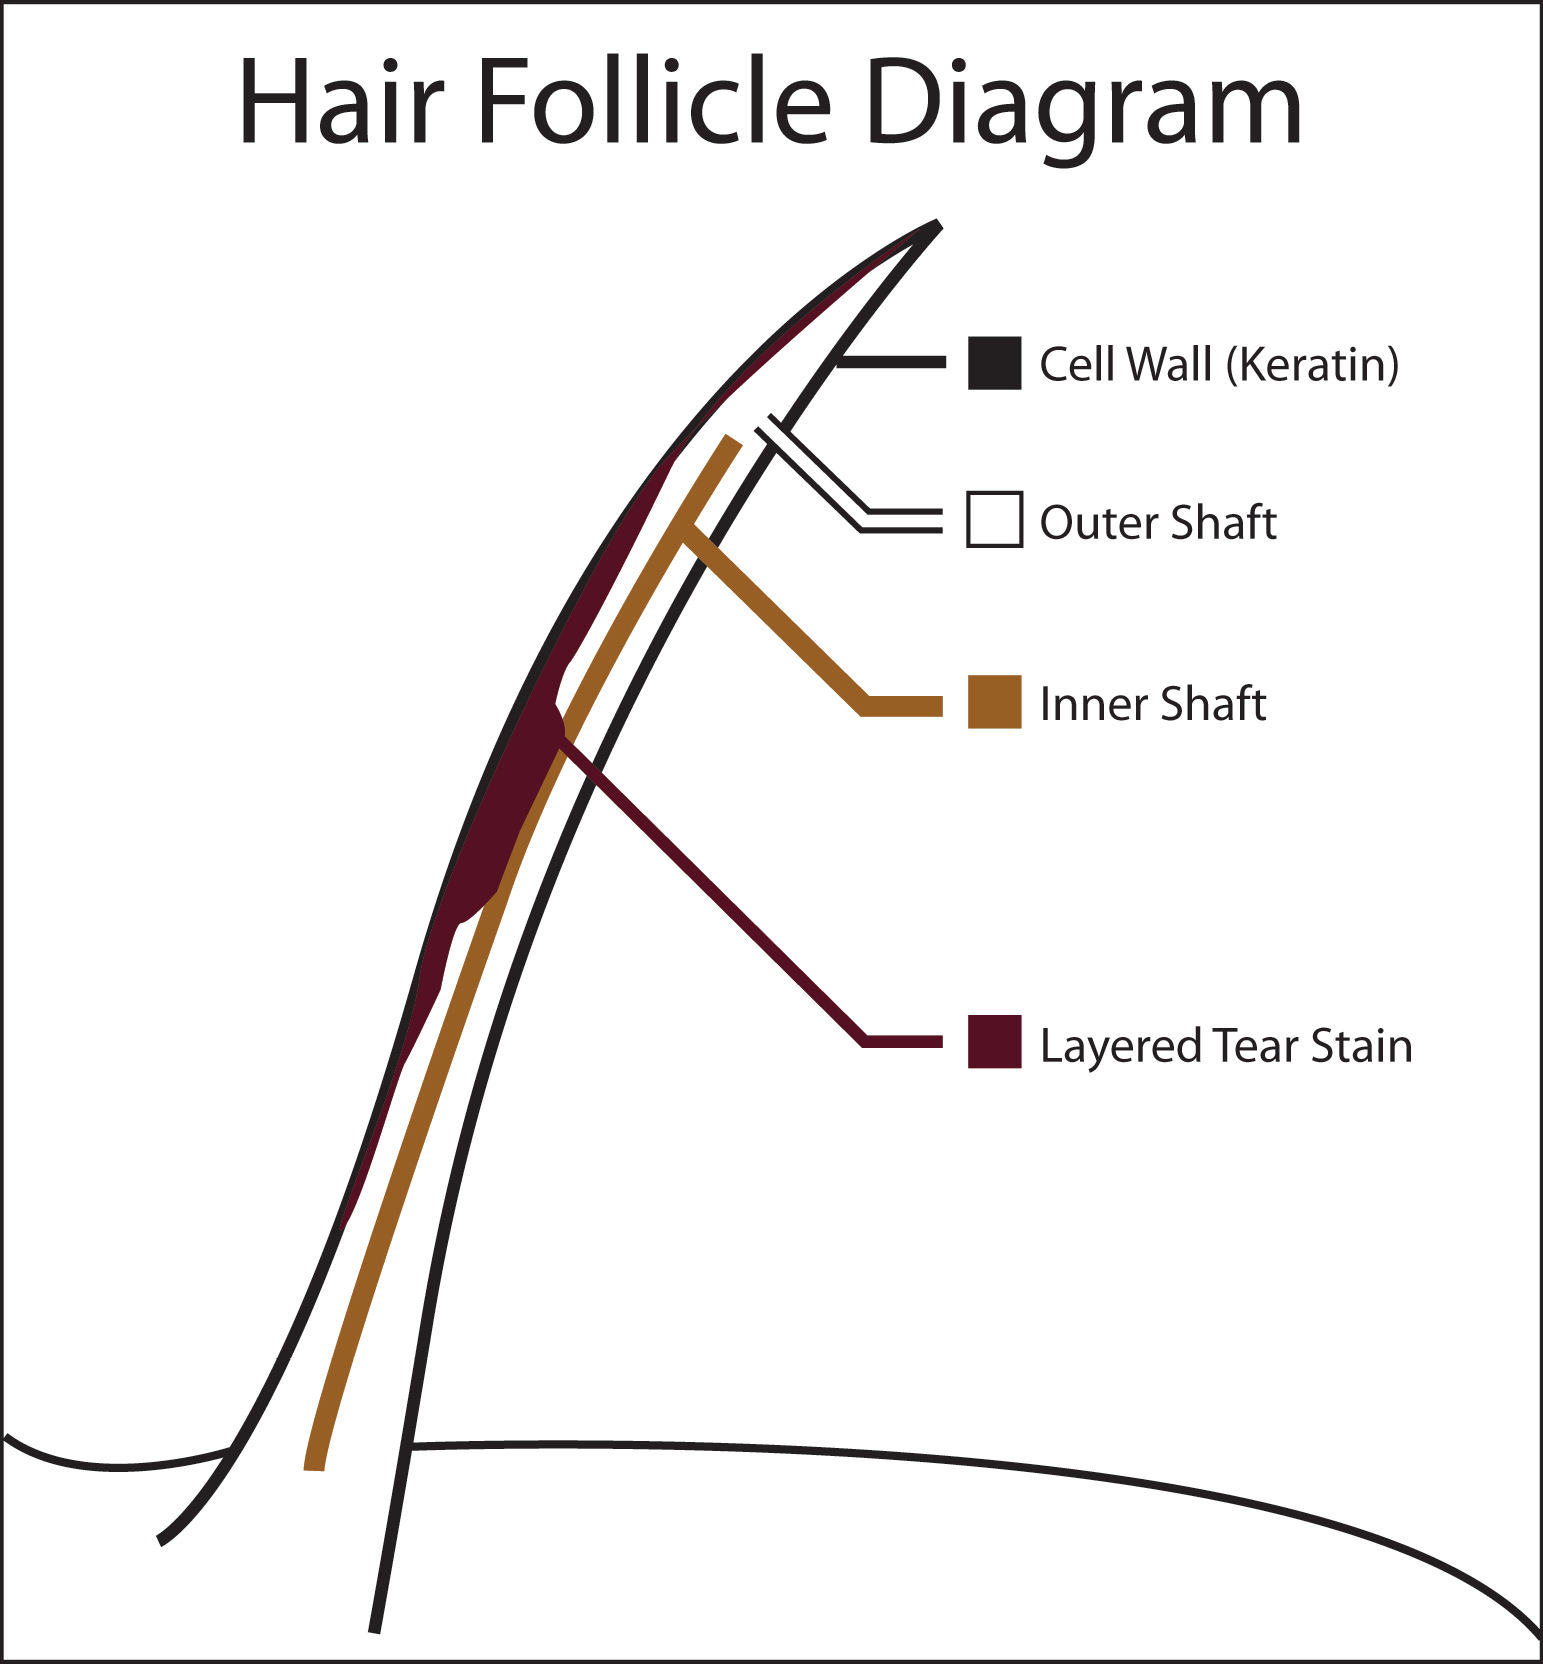 Hair Follicle Diagram For Pinterest